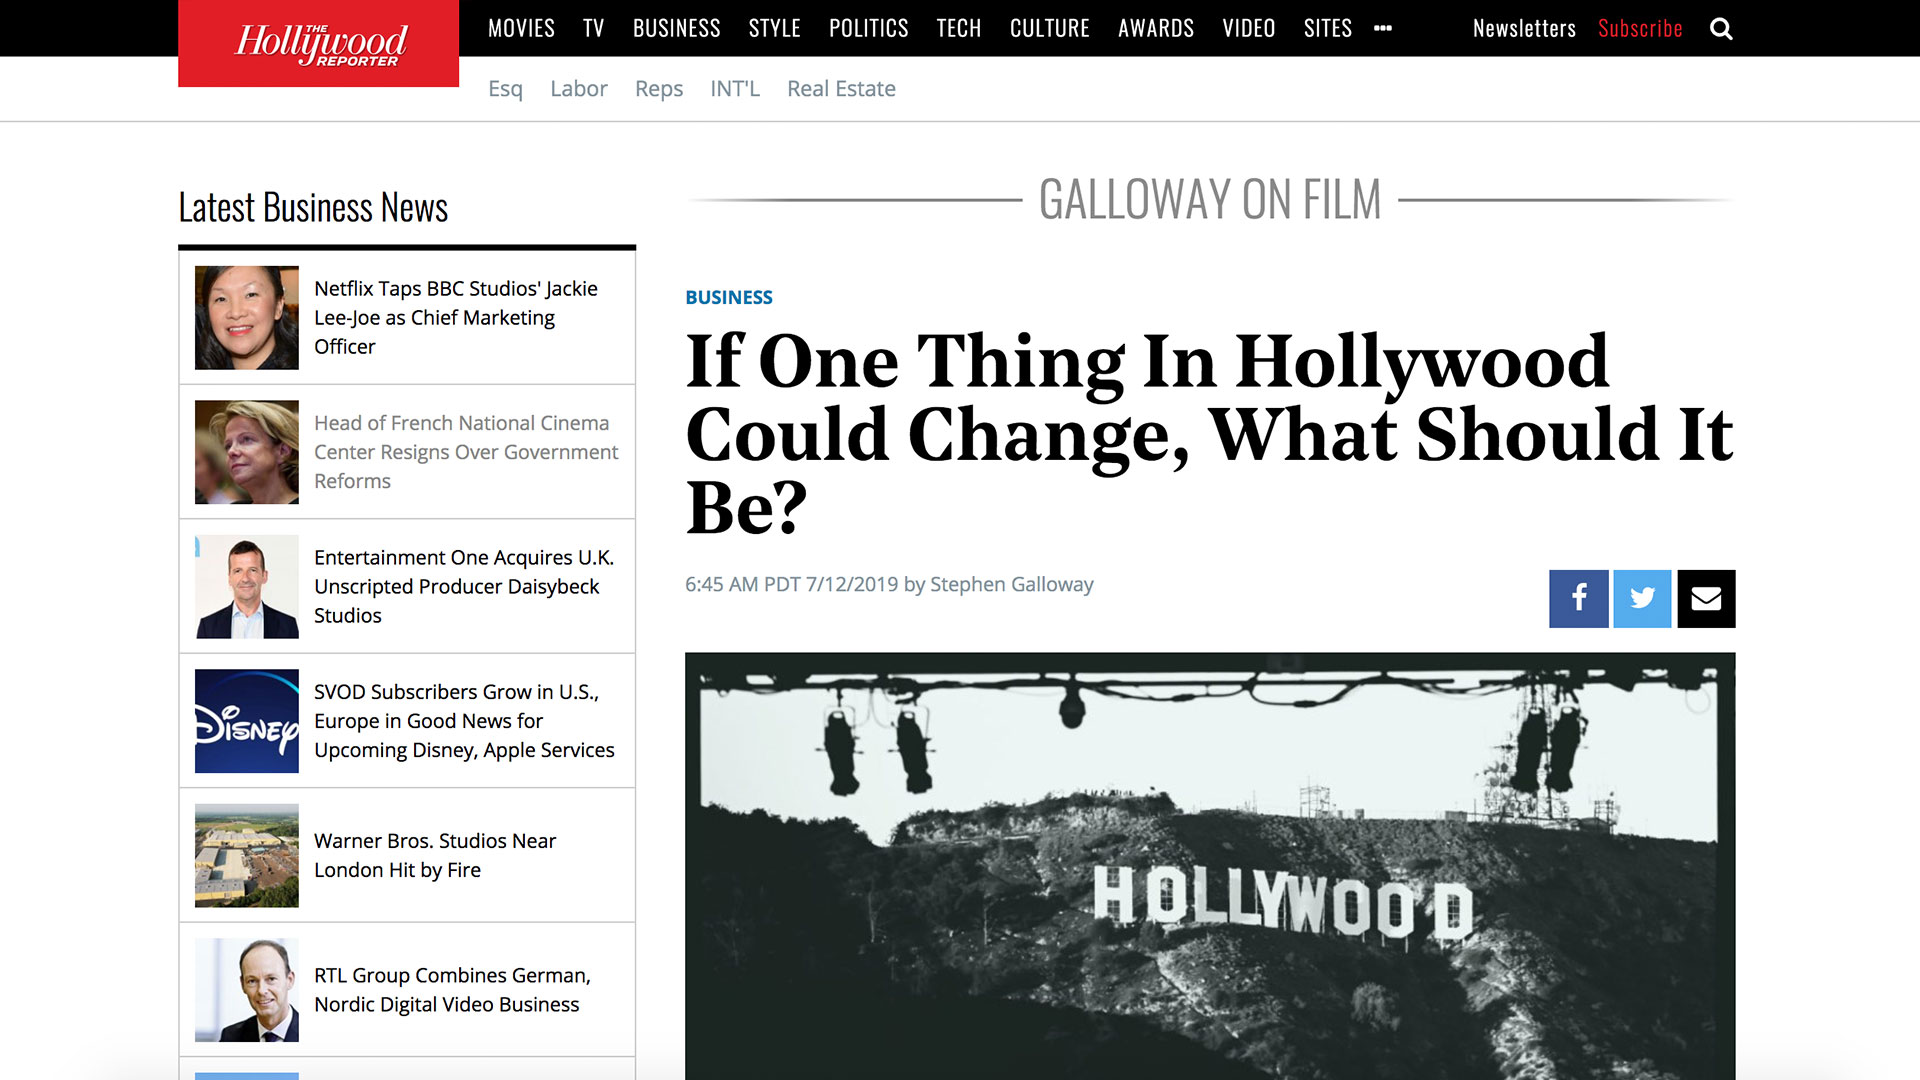 Fairness Rocks News If One Thing In Hollywood Could Change, What Should It Be?